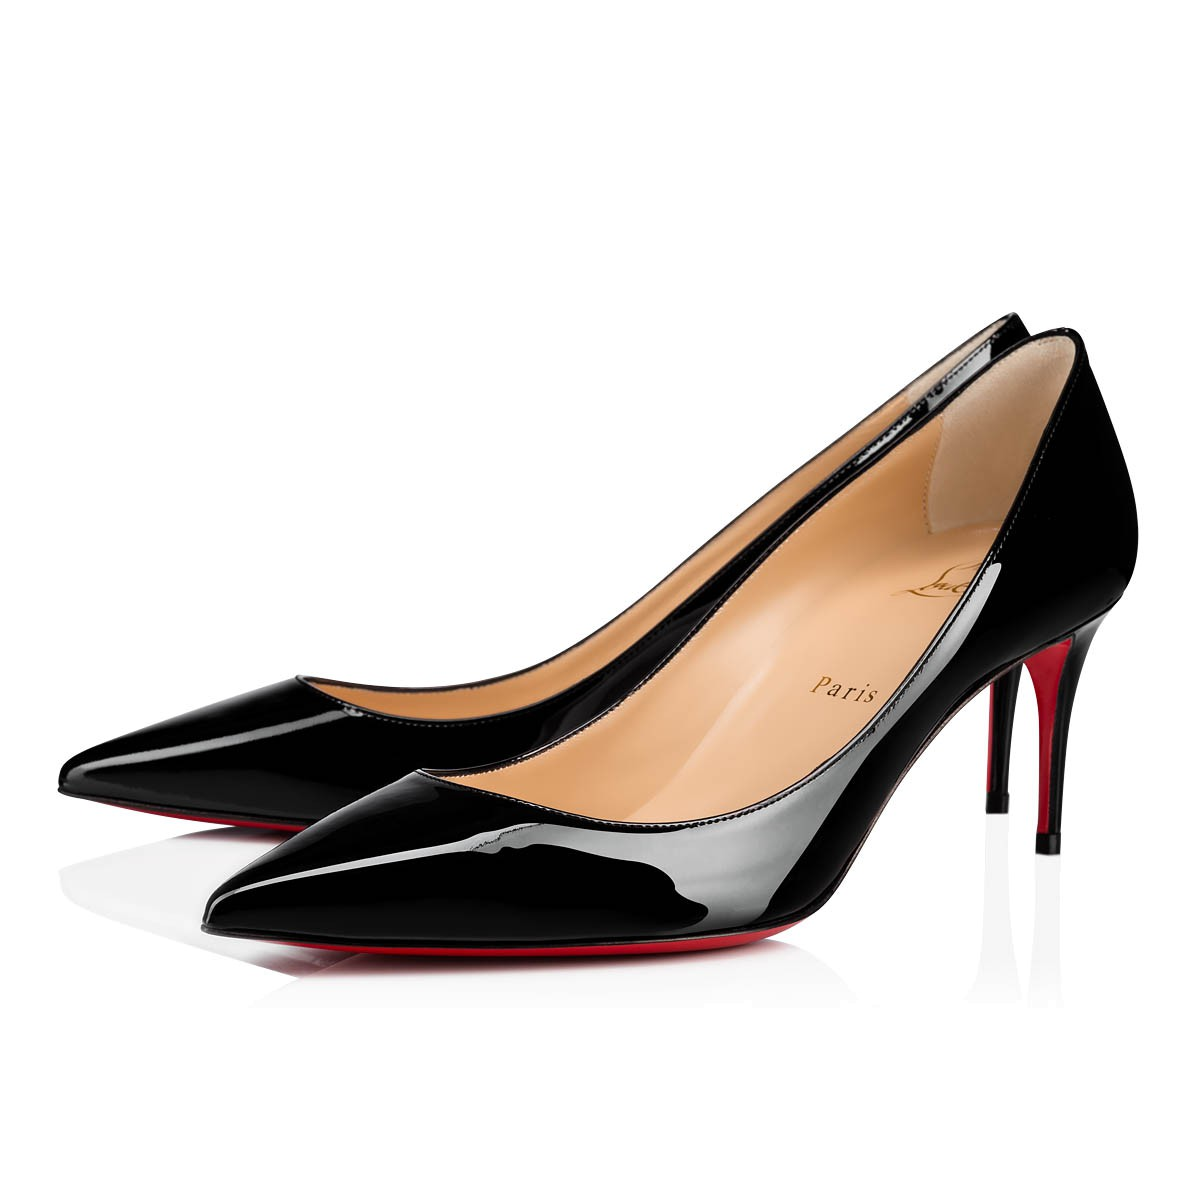 鞋履 - Kate - Christian Louboutin